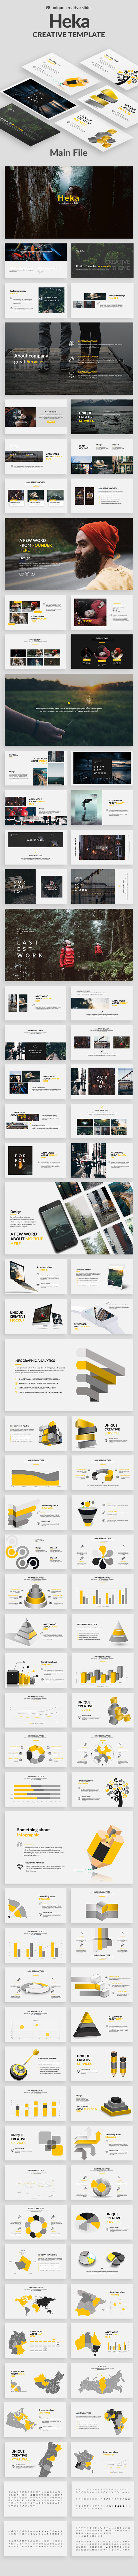 Heka Creative Powerpoint Template - Creative PowerPoint Templates